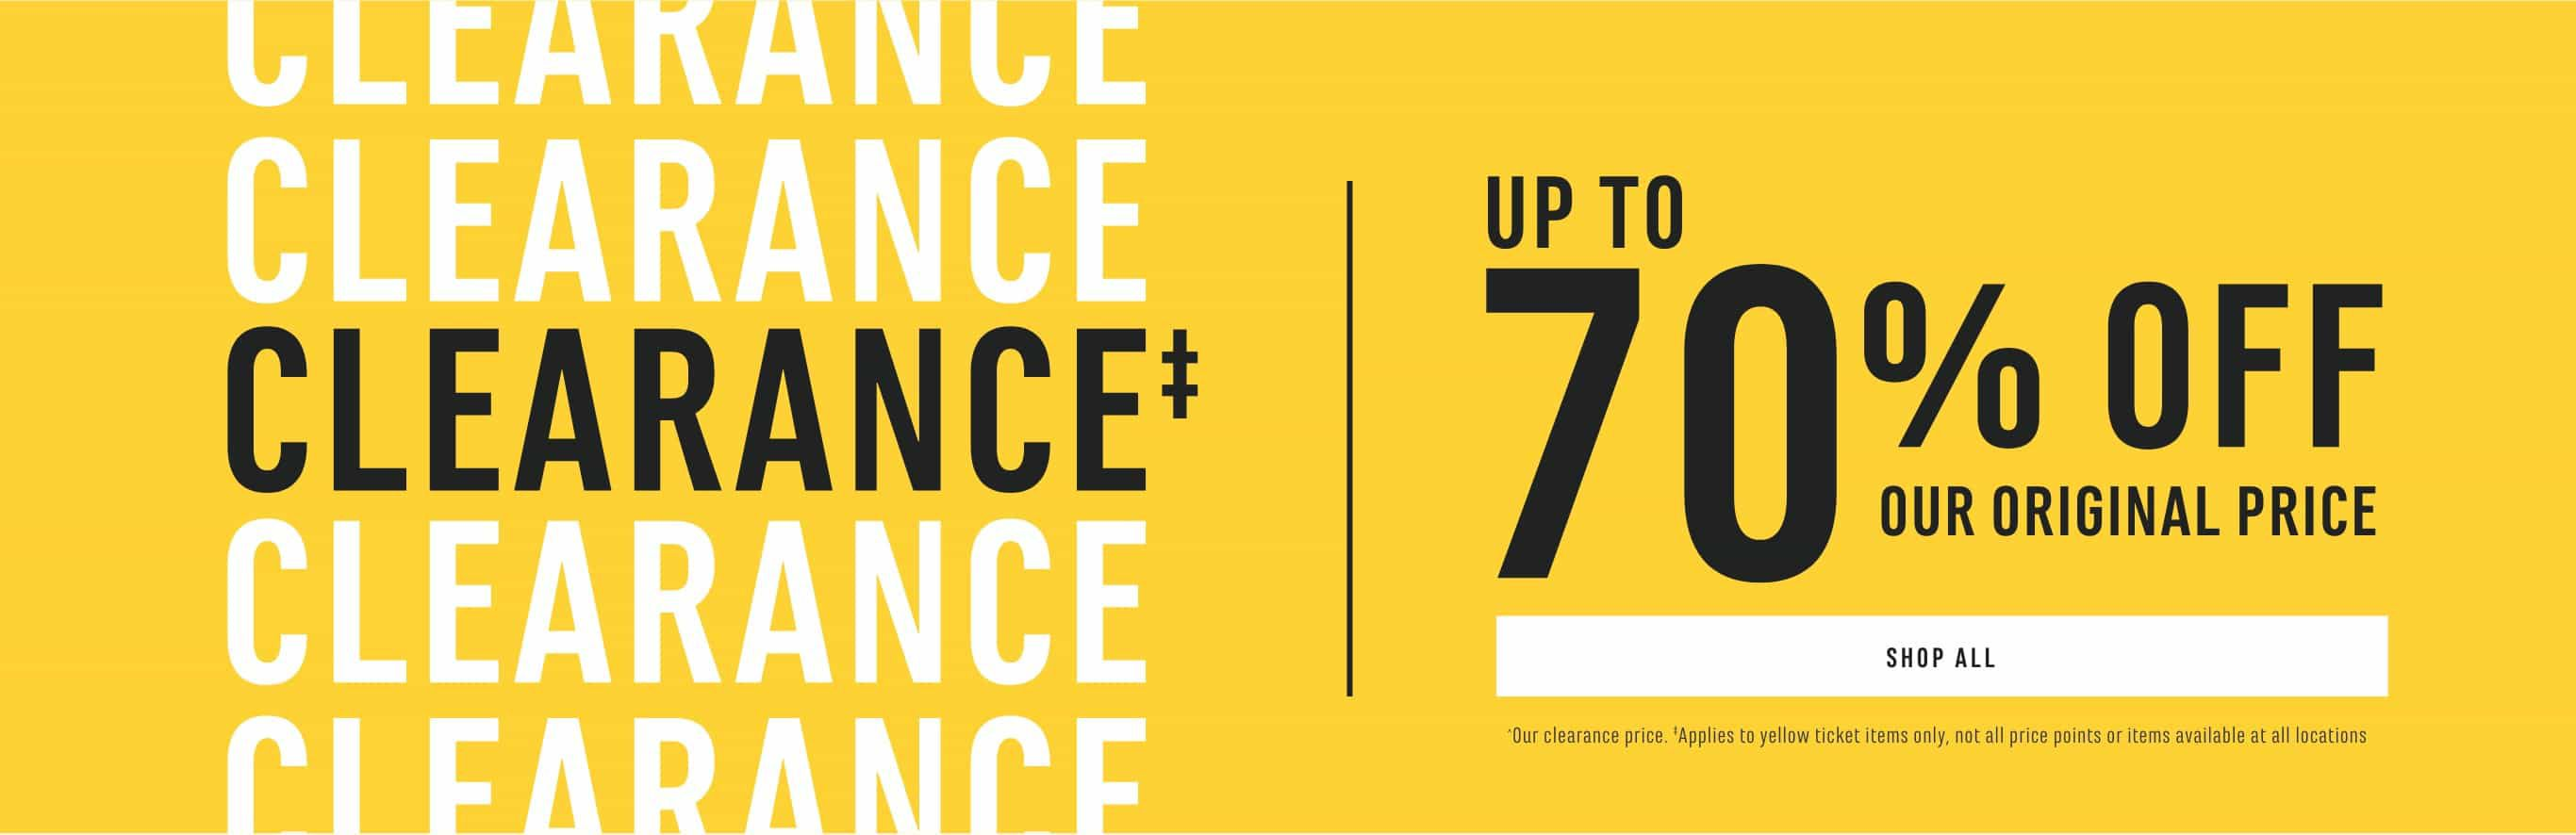 Clearance up to 70% Off Our Original Price. Shop Now.